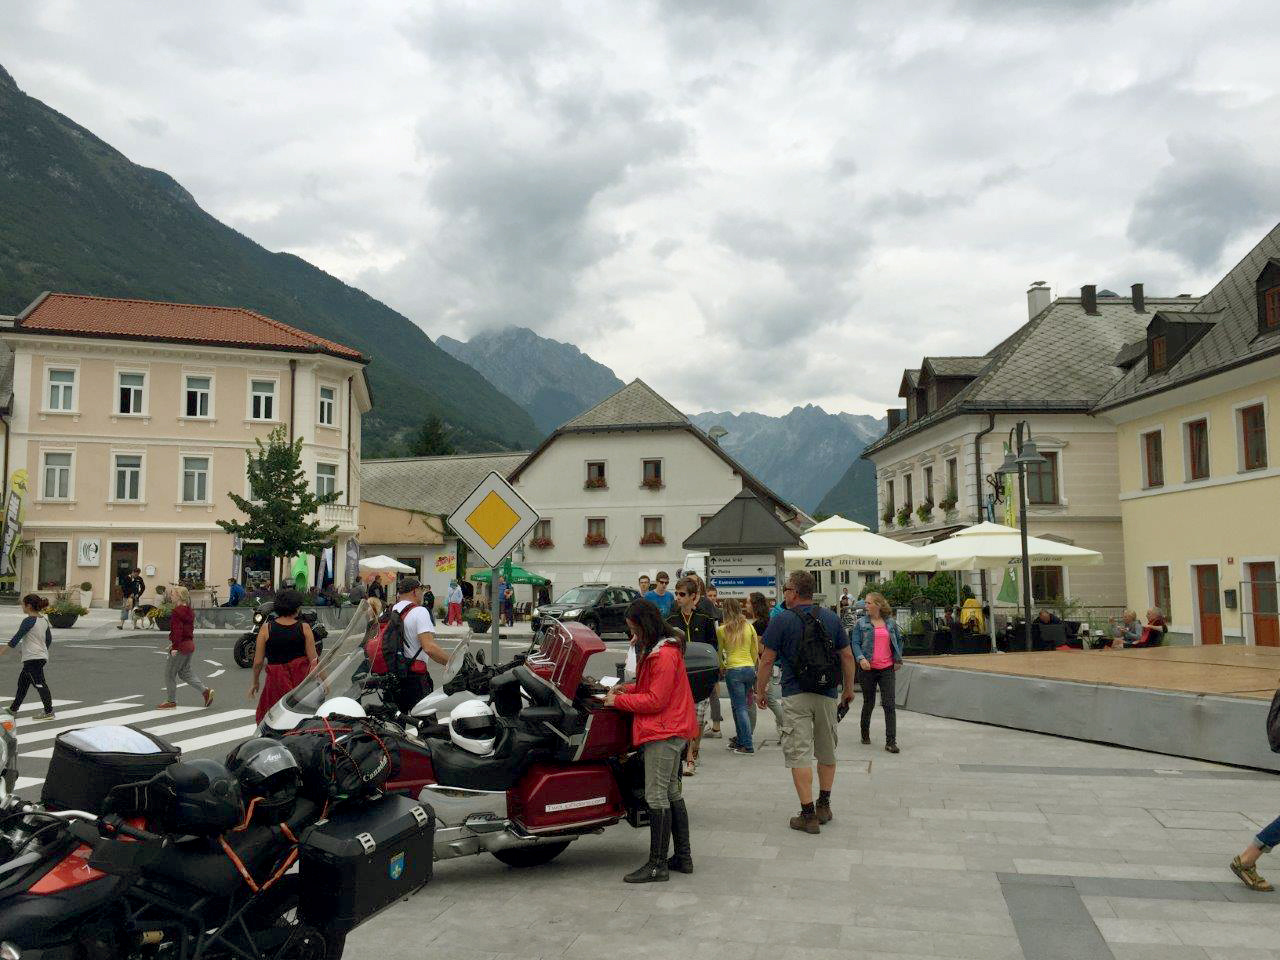 Arriving in Bovec - great parking spot!